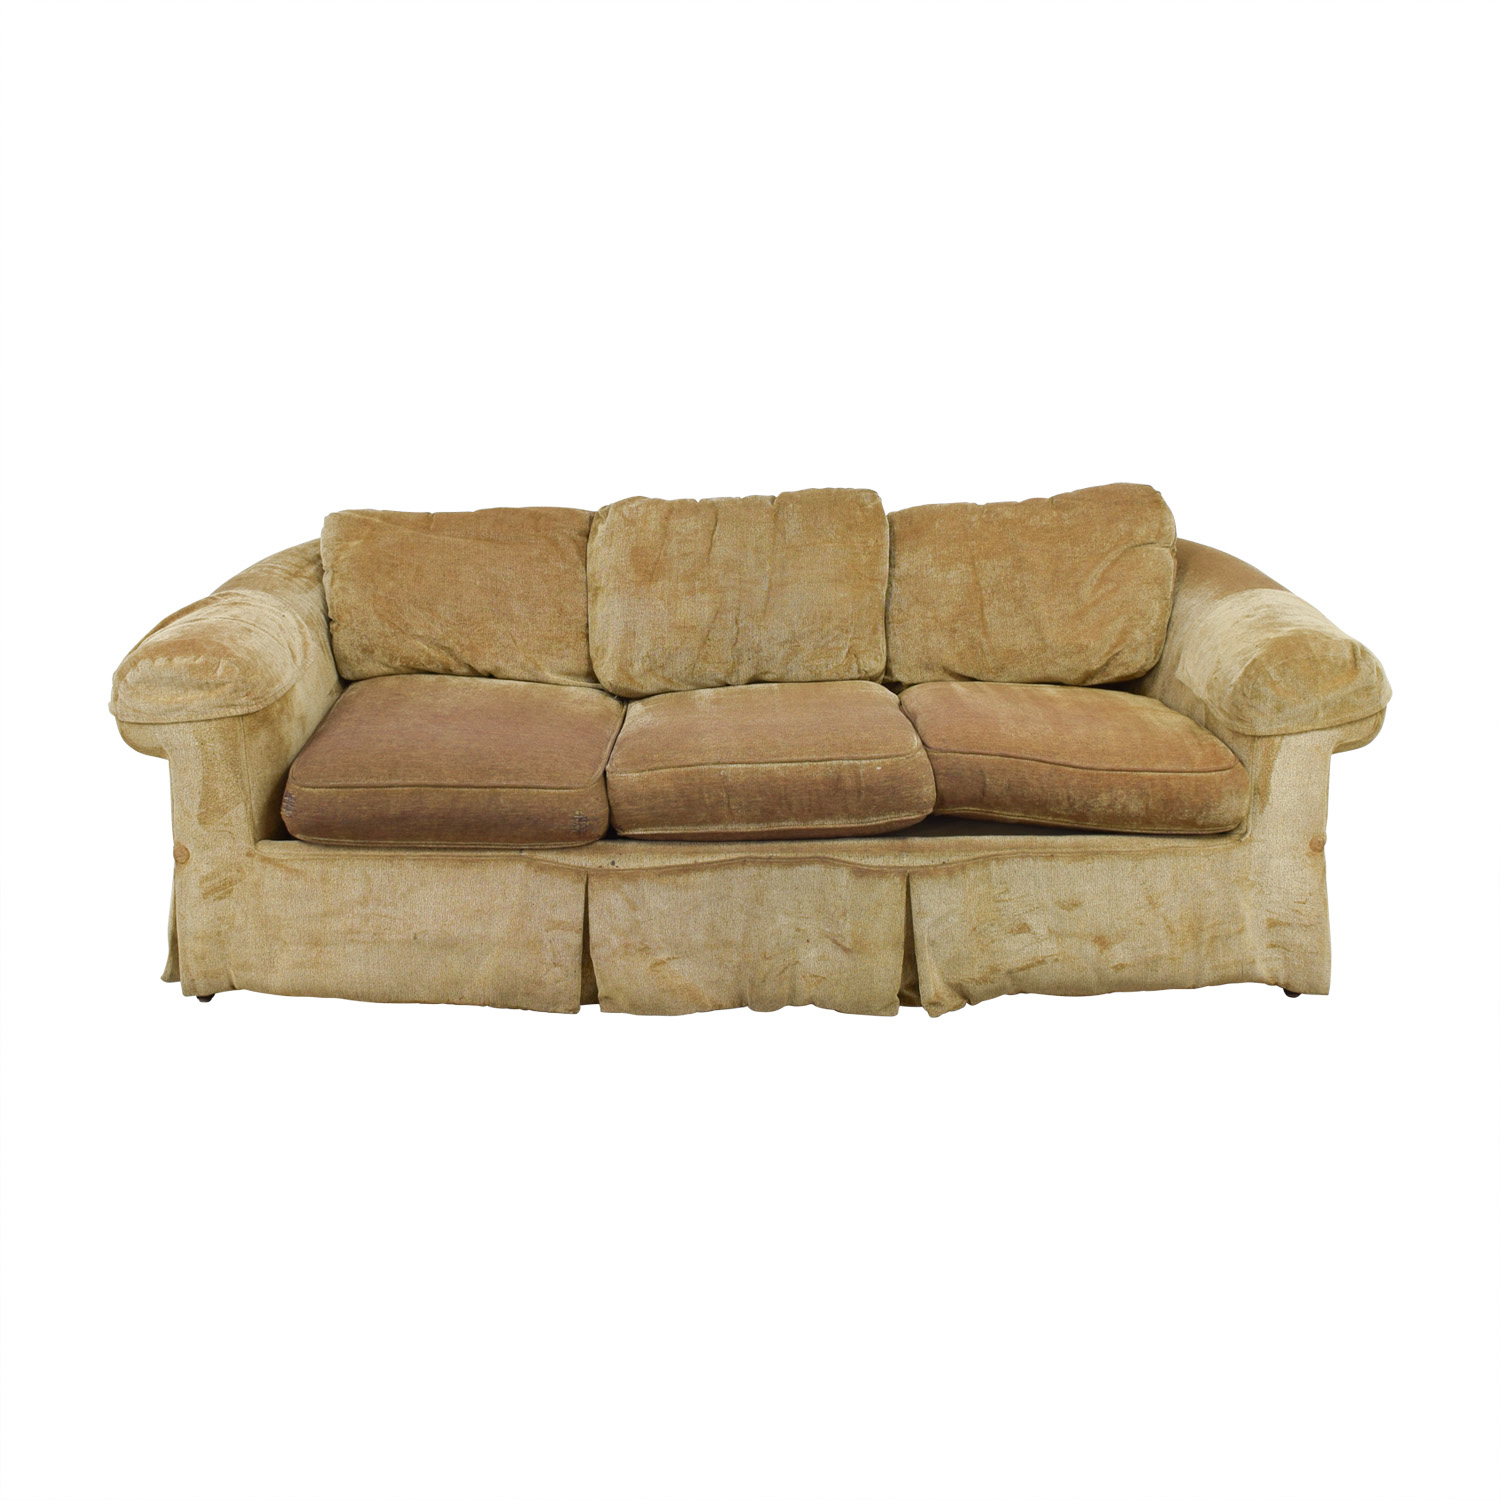 buy Bloomingdale's Tan Three Cushion Skirted Couch Bloomingdale's Sofas